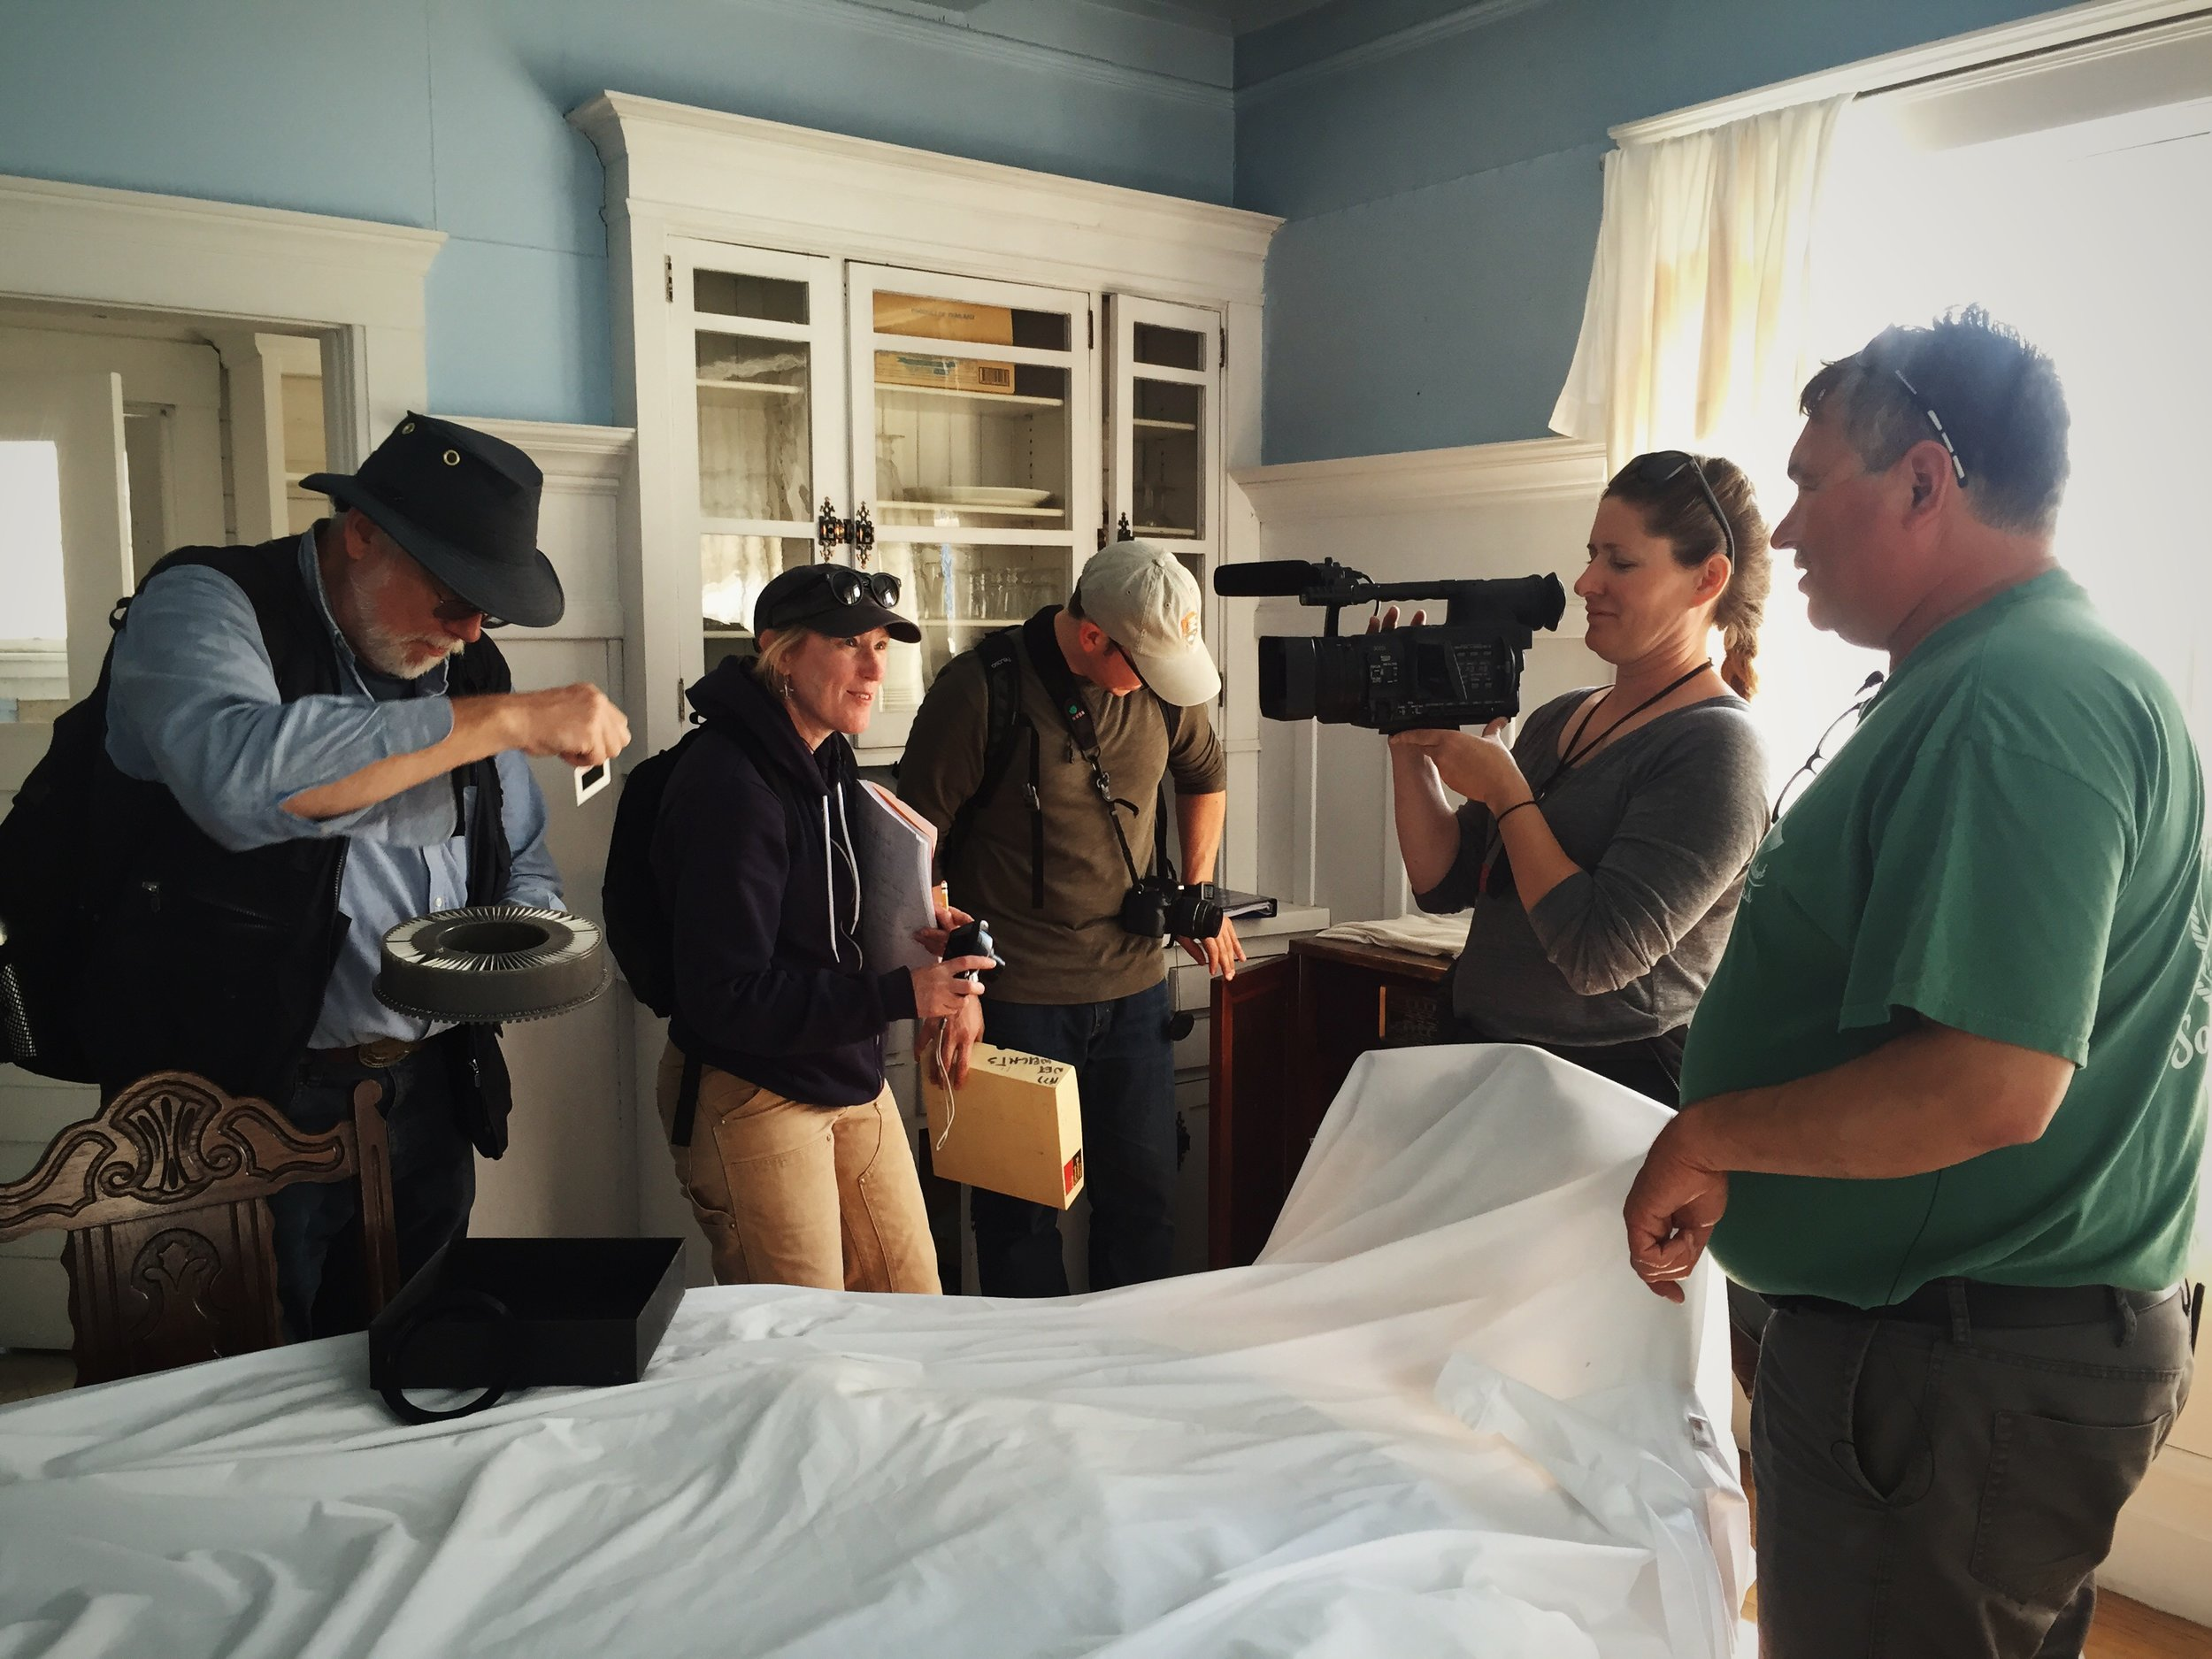 Historian Bob King, Historian Katie Ringsmuth, Title John Wachtel, Film Maker Sharon Thompson and Second Generation <NN> Cannery Watchman Carvel Zimin on site in the Superintendents White House during the collaborative effort to document the architecture of the campus in preparation for seeking a listing in the National Register of Historic Places.